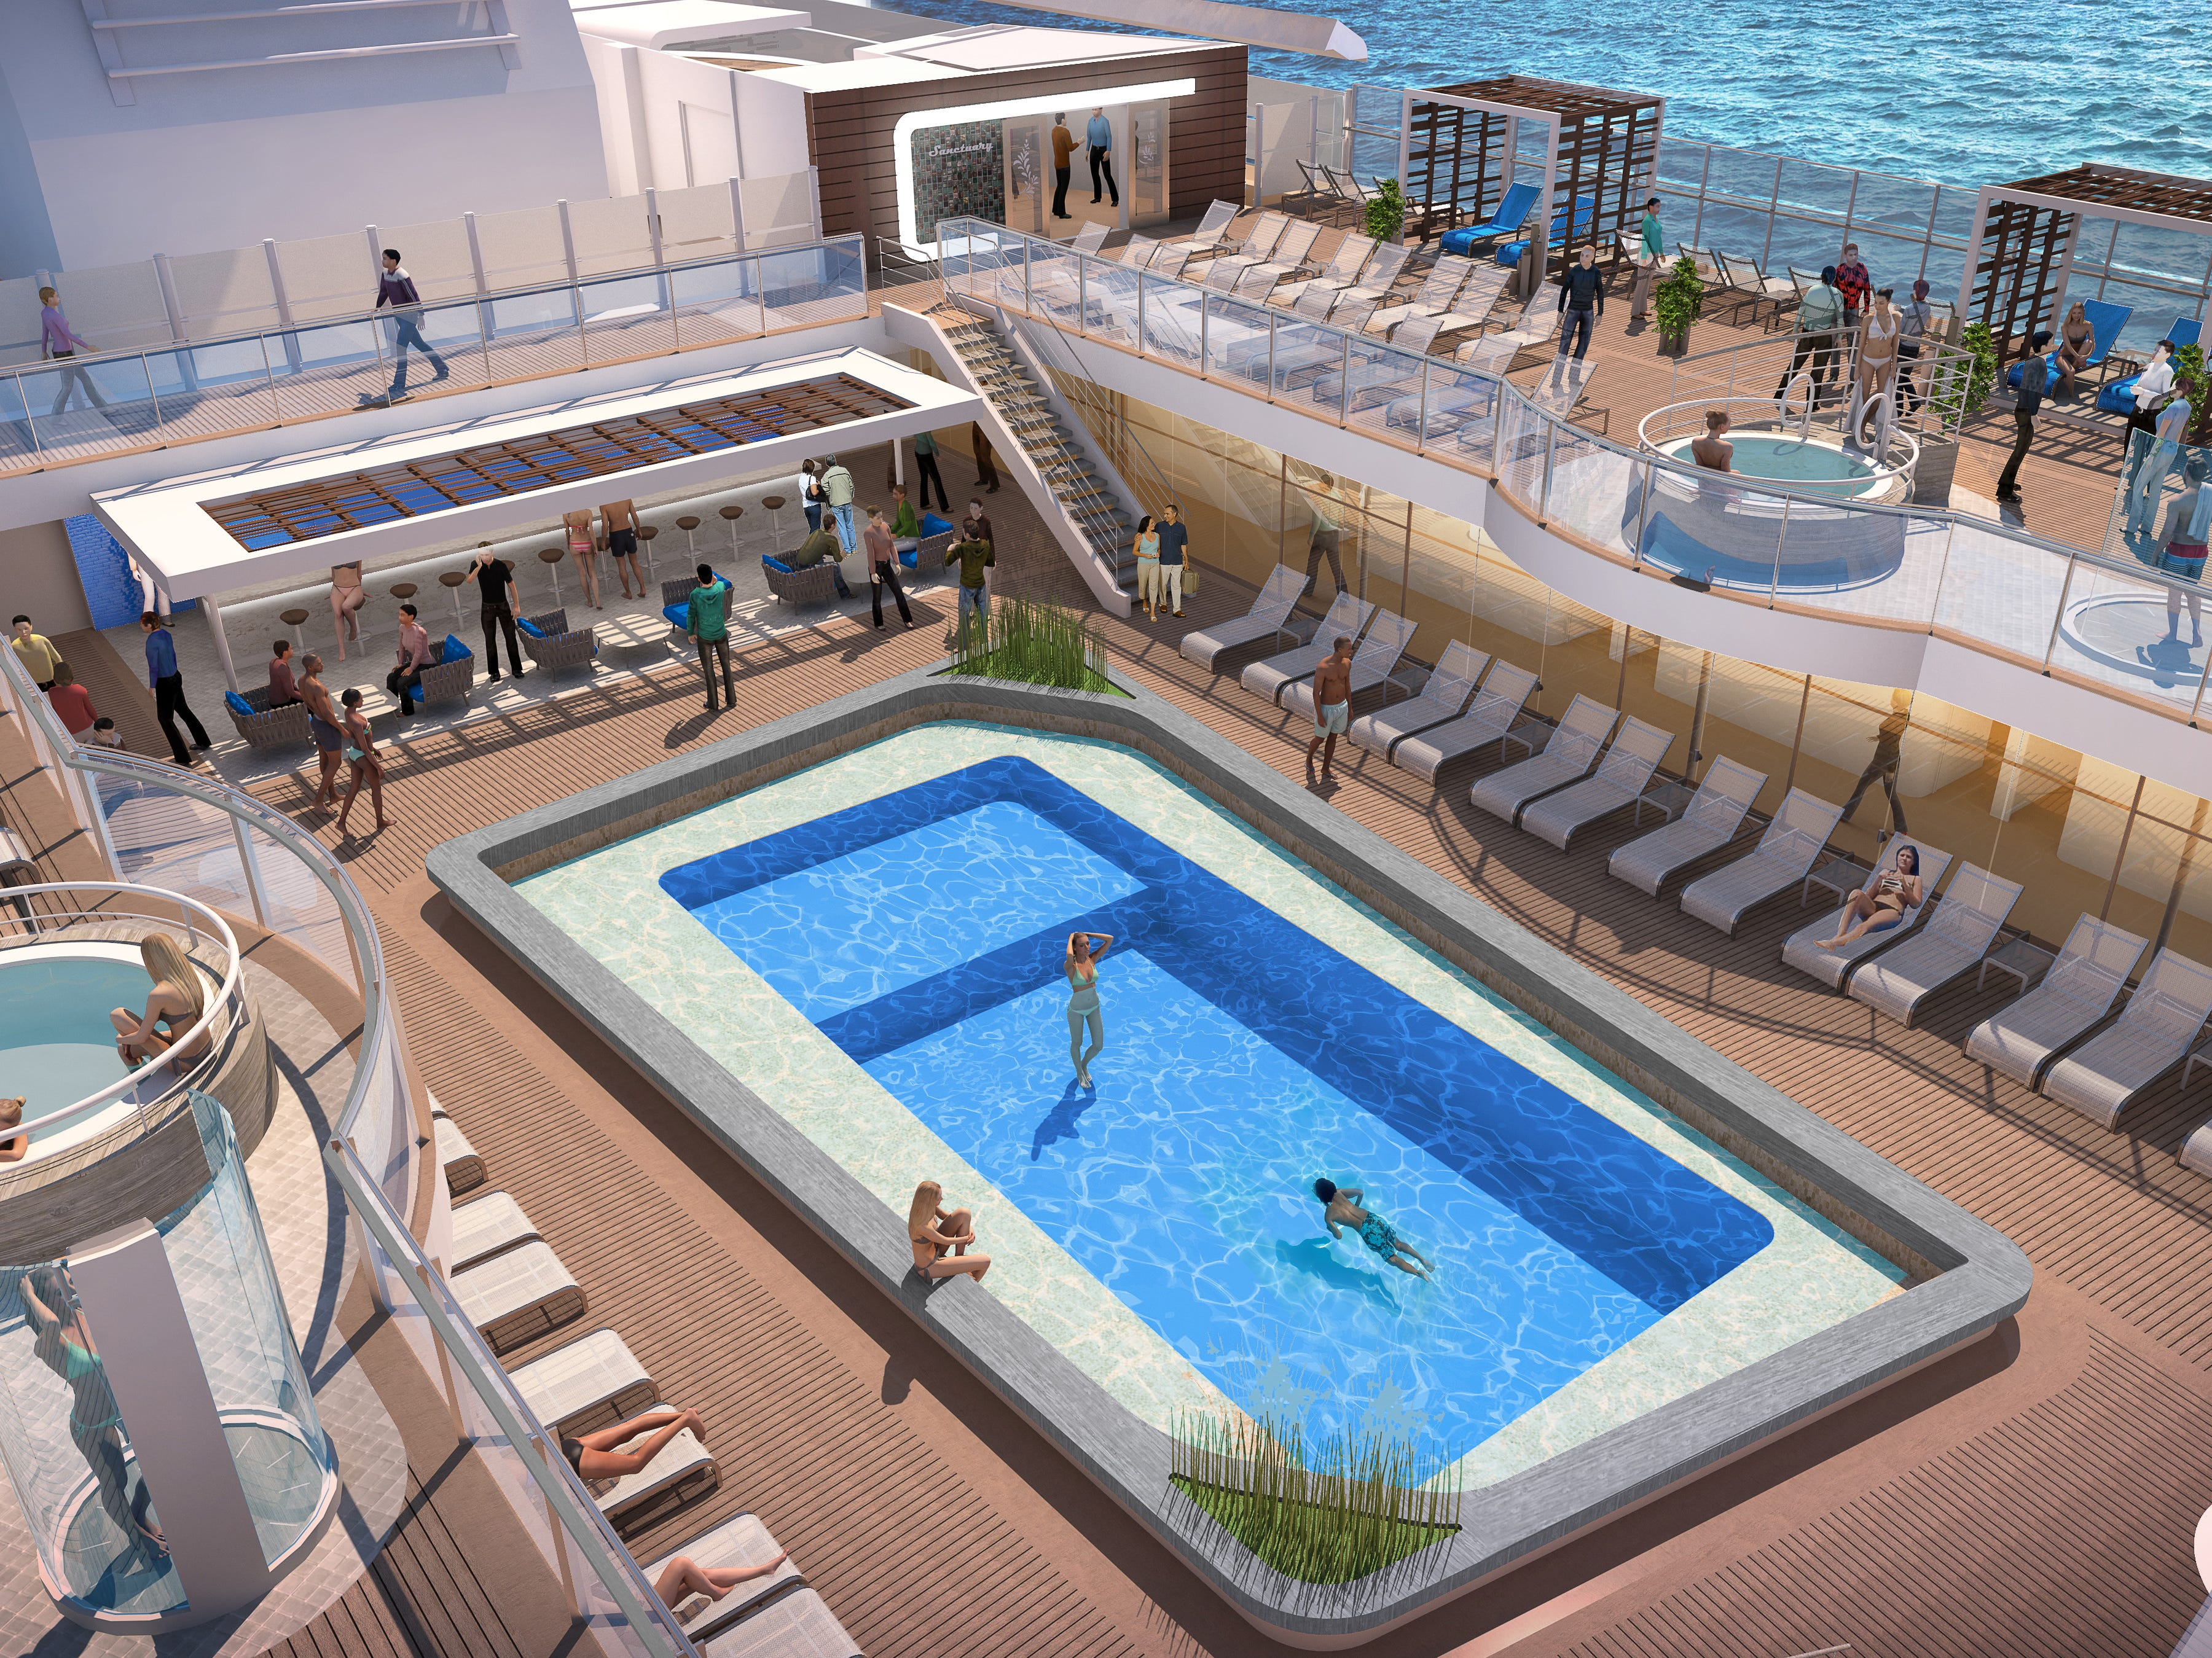 An artist's drawing of the Retreat Pool on Sky Princess.